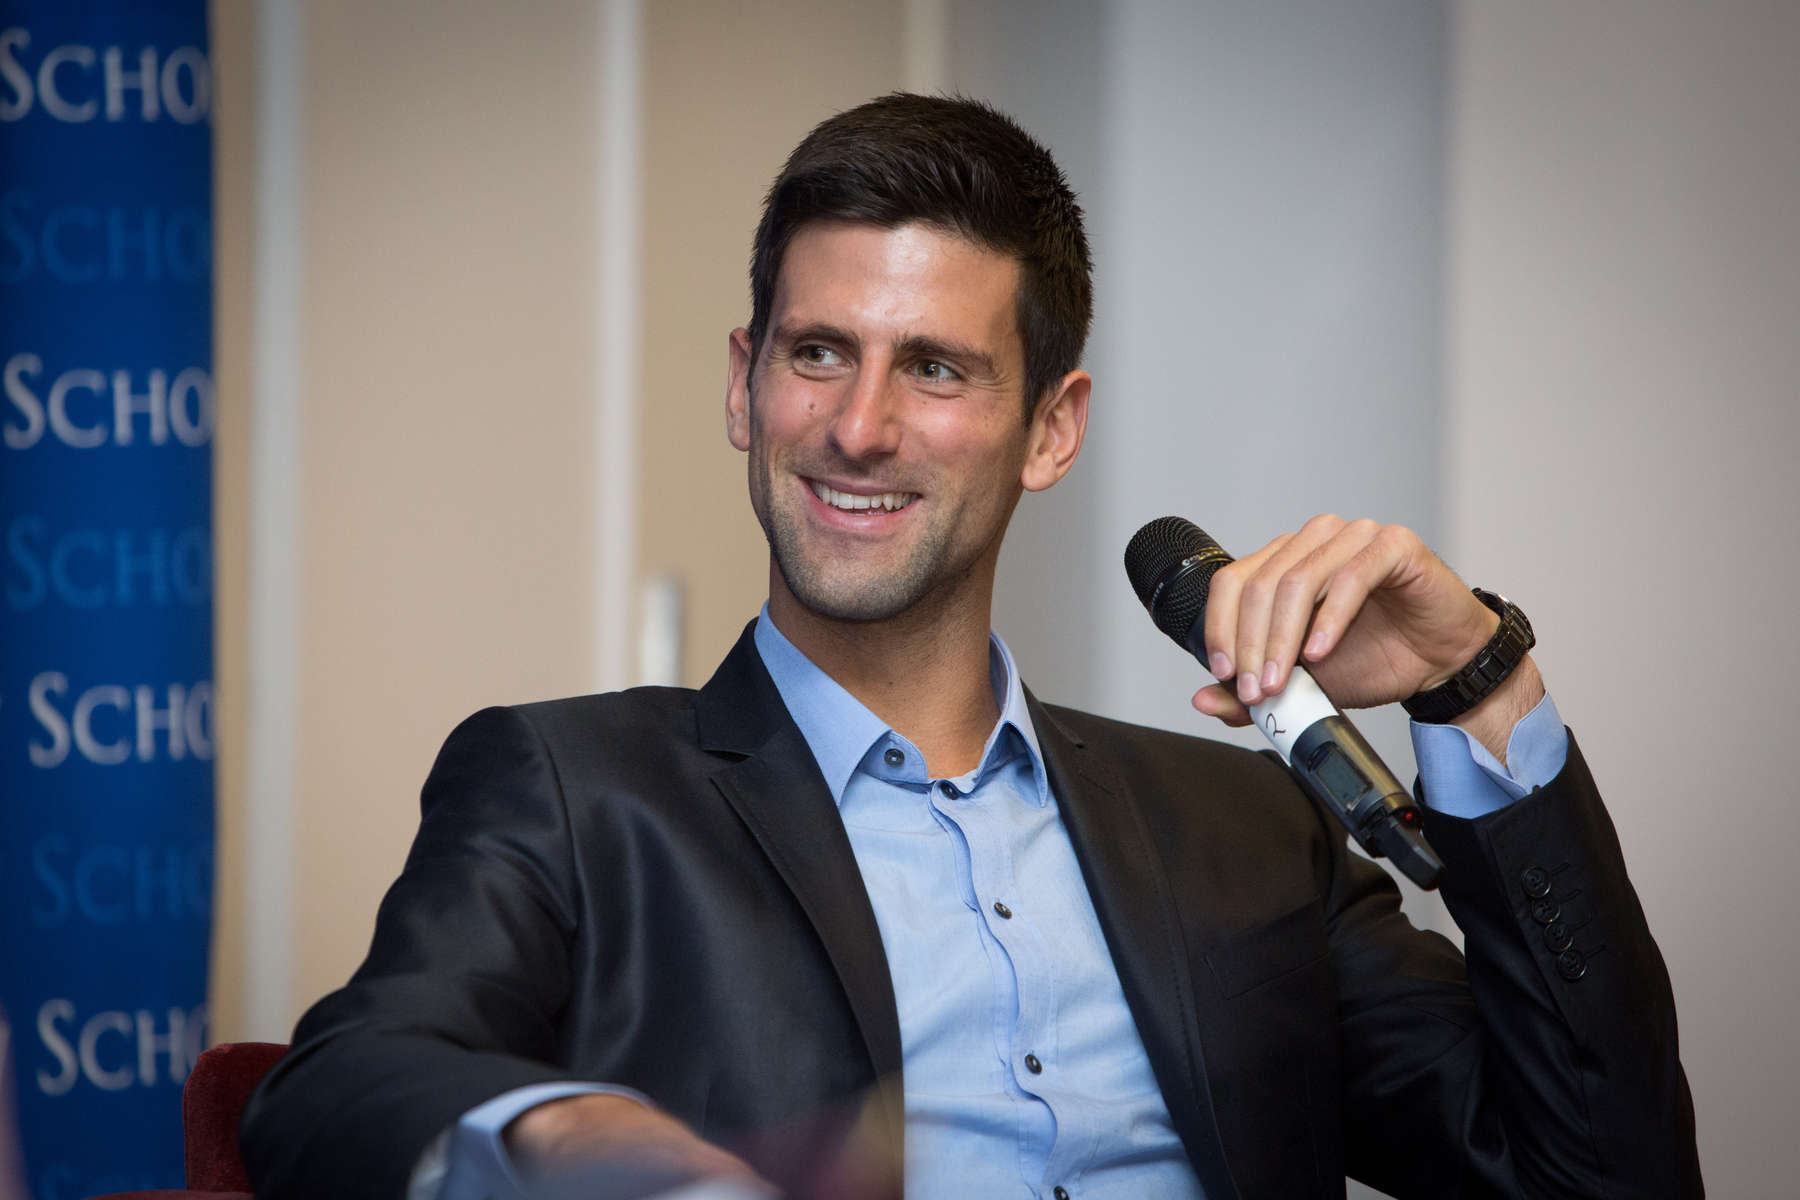 Considered one of the best tennis players of all time, Serbian tennis player, Novak Djokovic talks about the business of tennis at a university in NewYork.